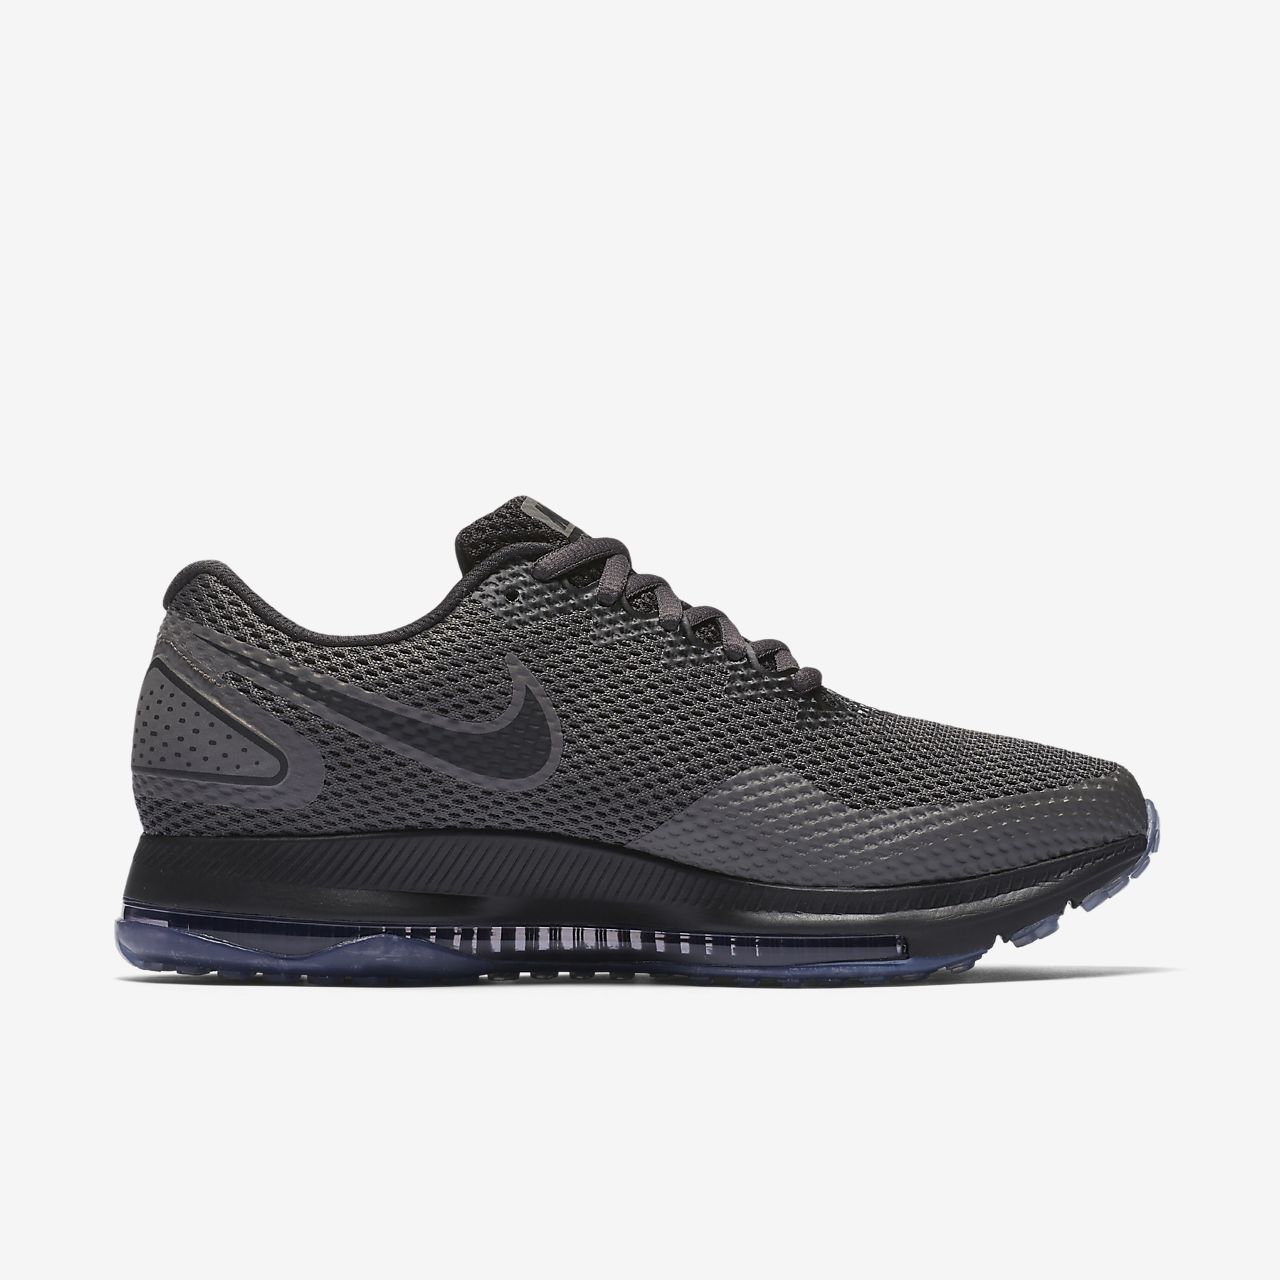 ... Nike Zoom All Out Low 2 Women's Running Shoe